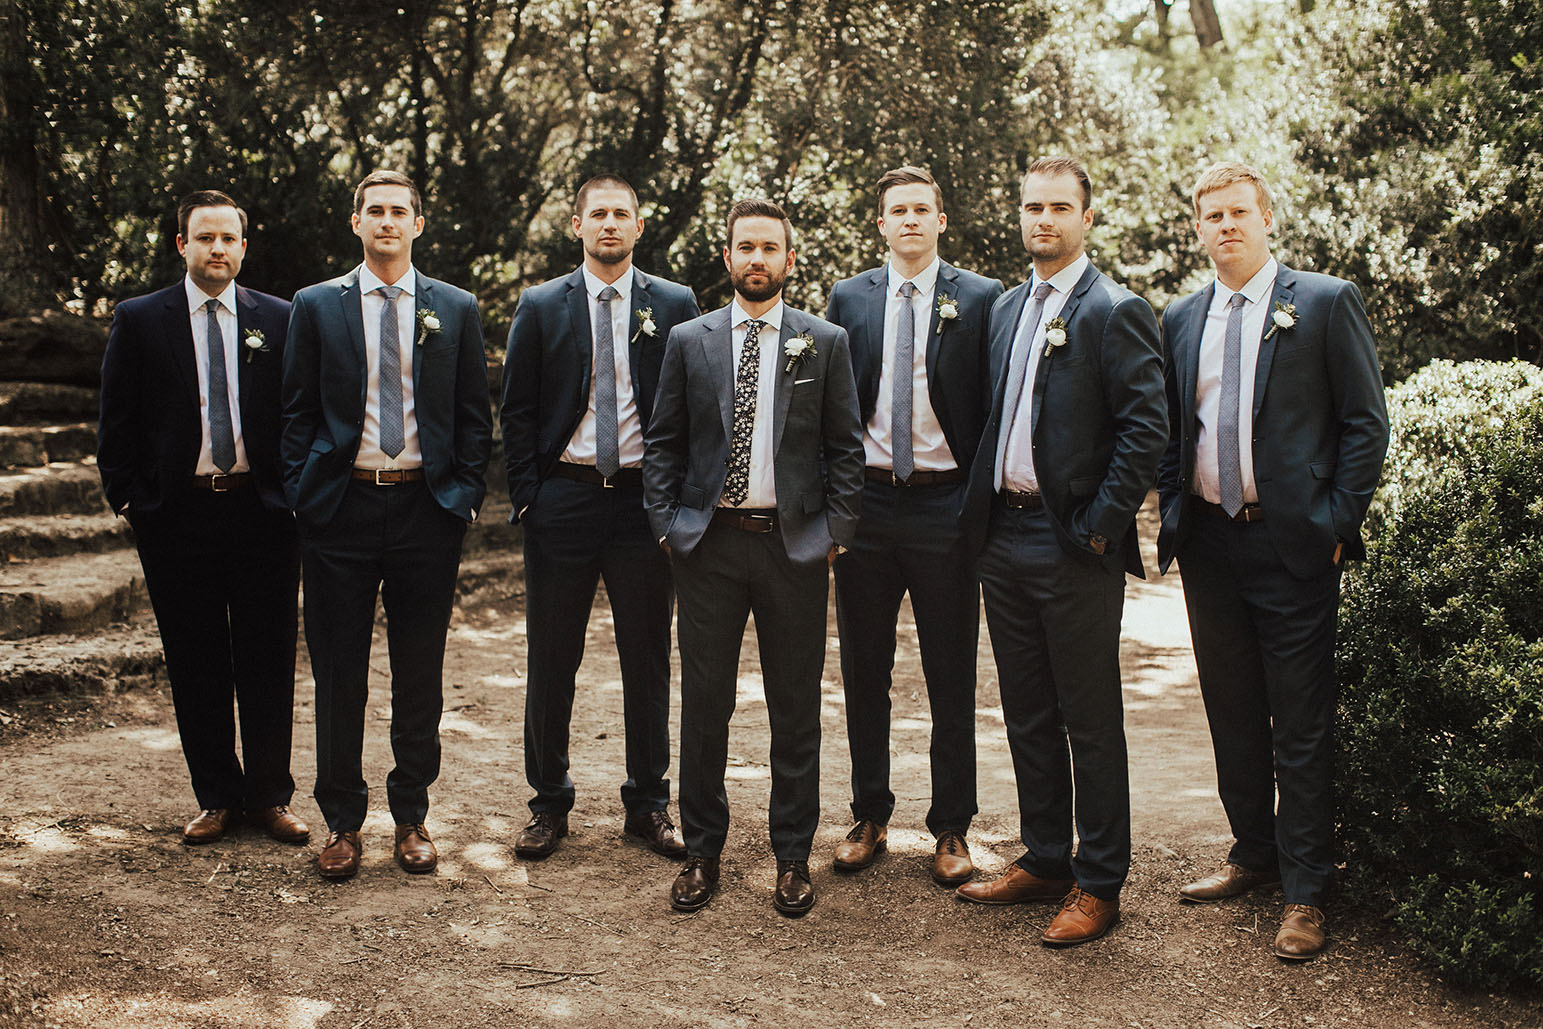 Russ with Groomsmen